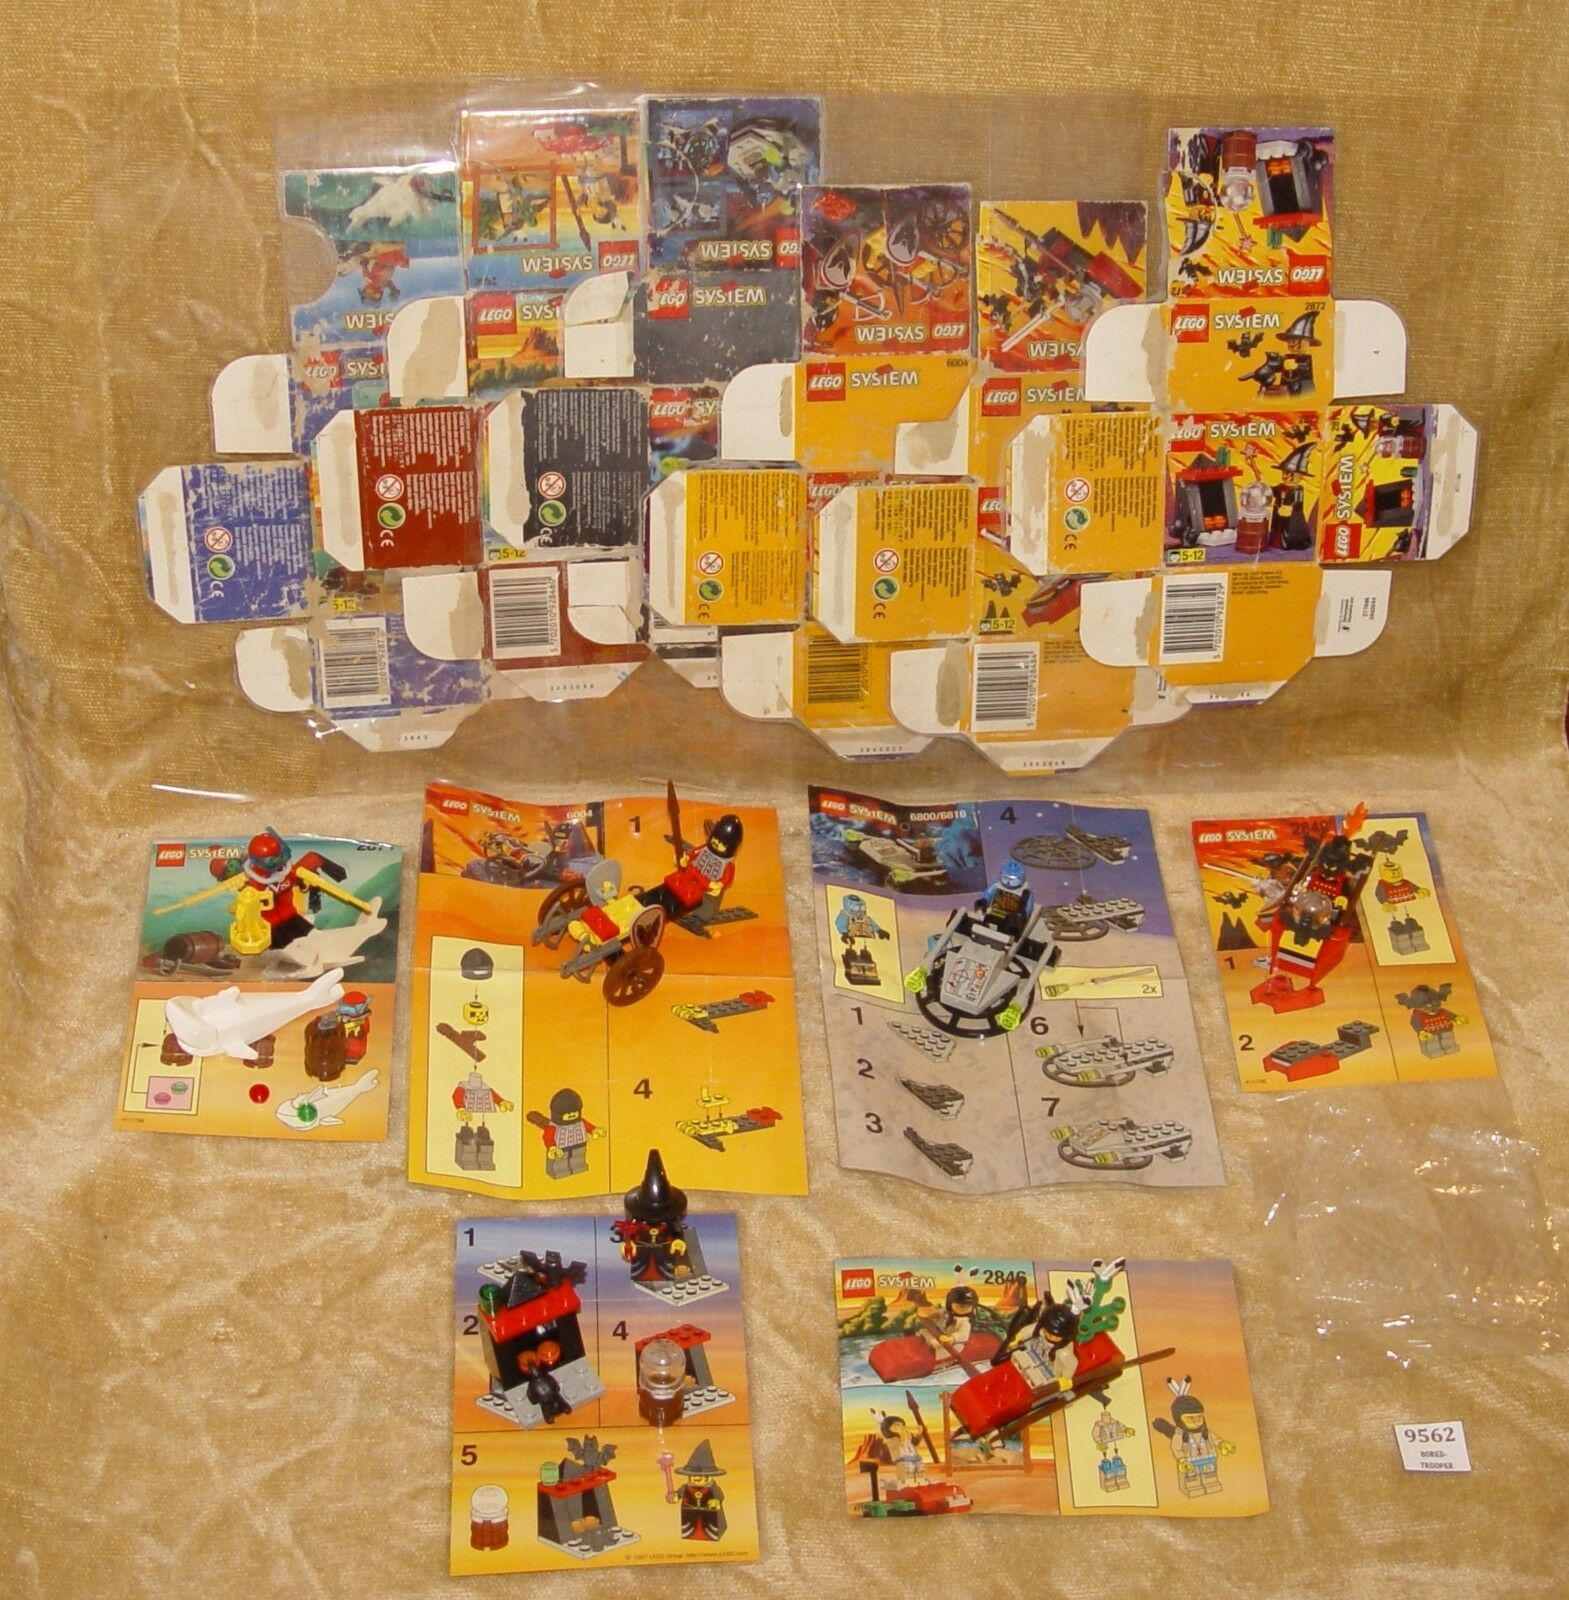 LEGO Sets  Kayak,2872 6004 Cart,2848 Knight,2871 Diver,6800 Cyber,2846 Kayak,2872  Witch BOX 2afea0